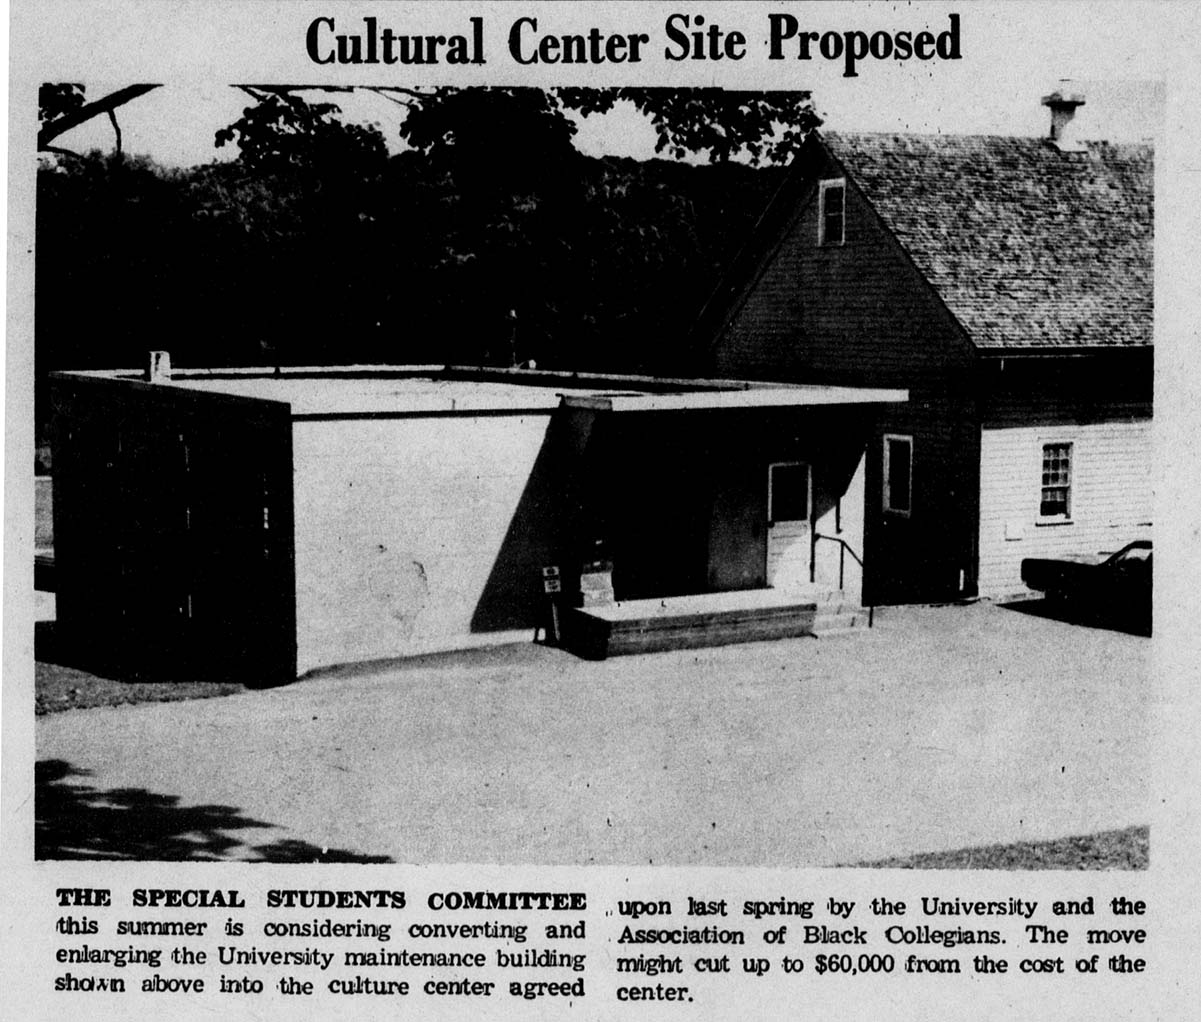 Maintenance building as proposed cultural center site, 1969